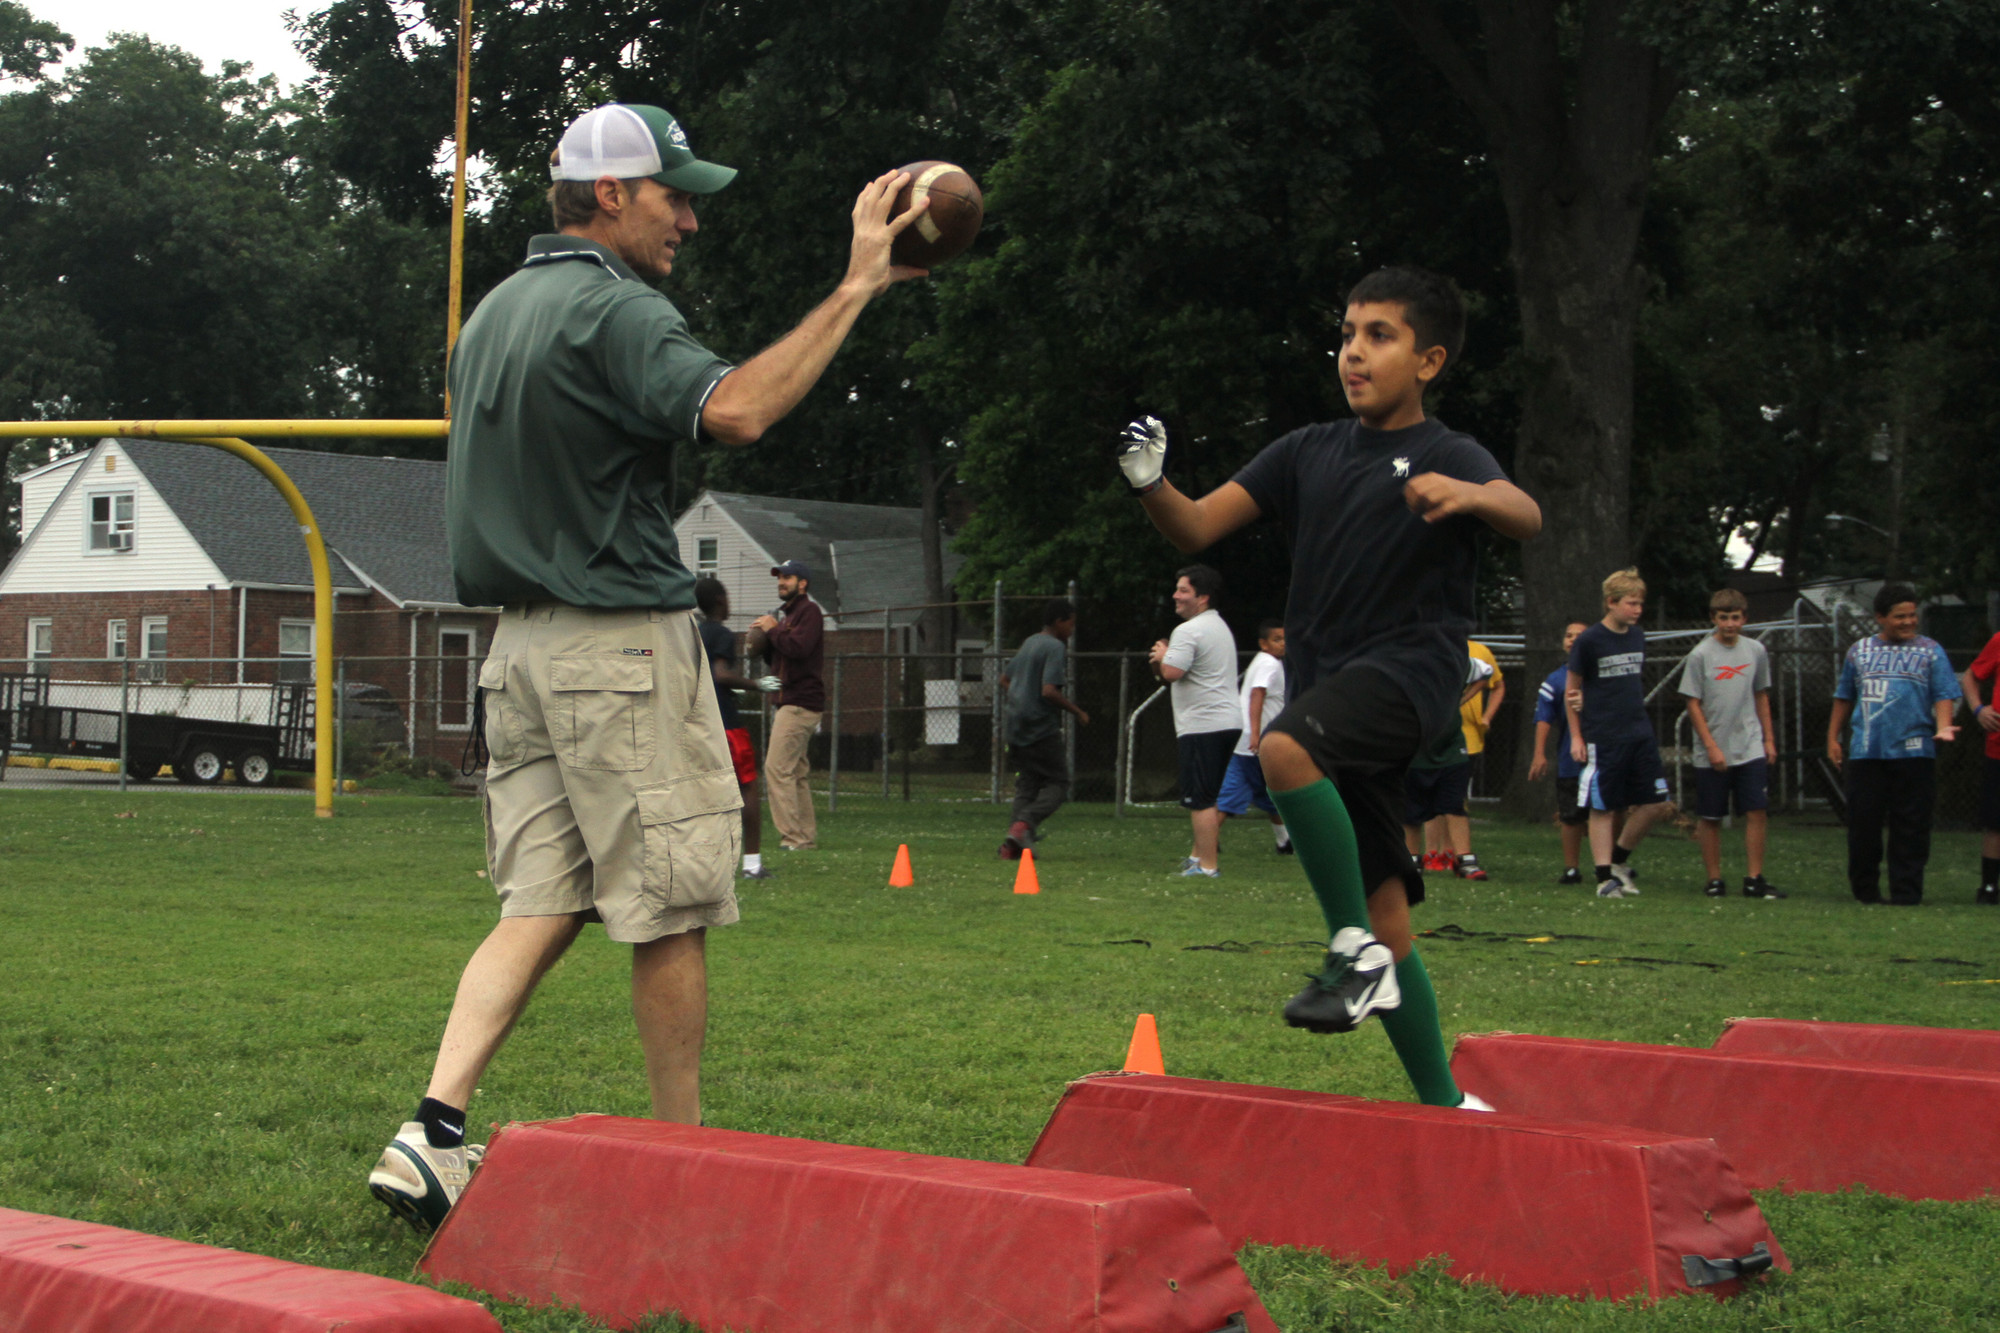 Coach Bobby Hawkey Jr., made sure eyes were up as players hit the obstacle course as they trained for the upcoming season.